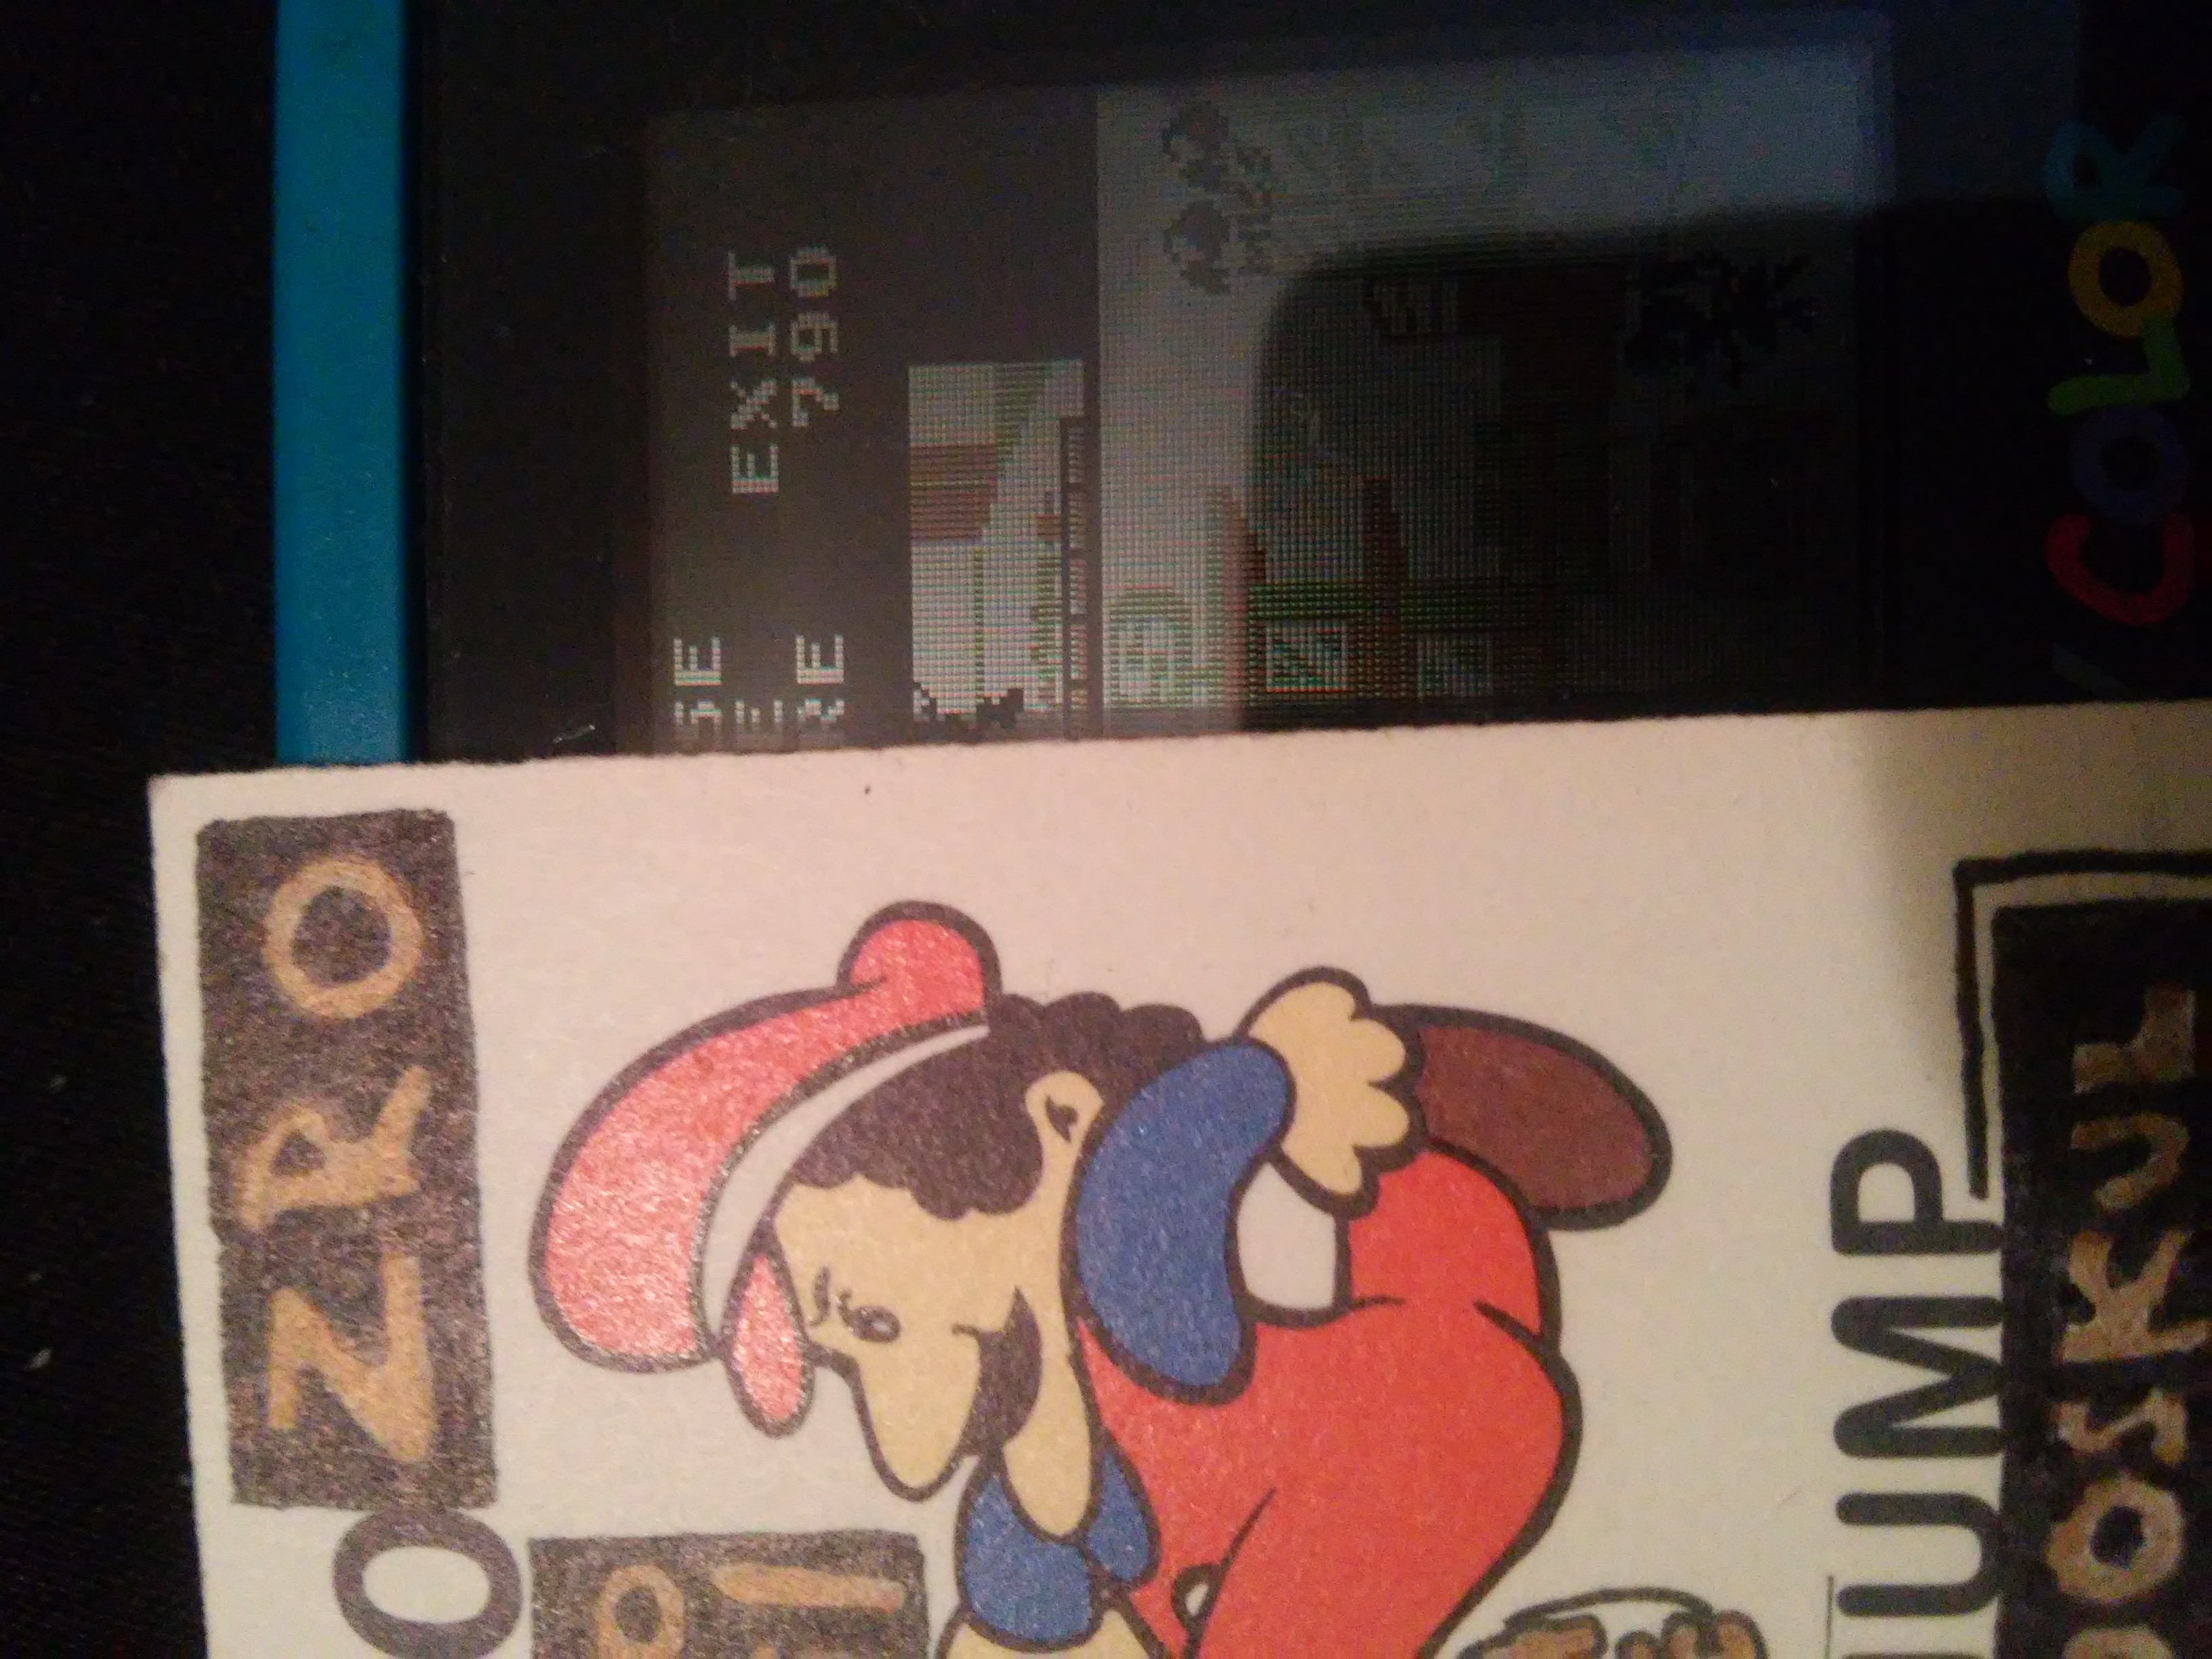 Game & Watch Gallery: Oil Panic [Classic: Hard] 944 points